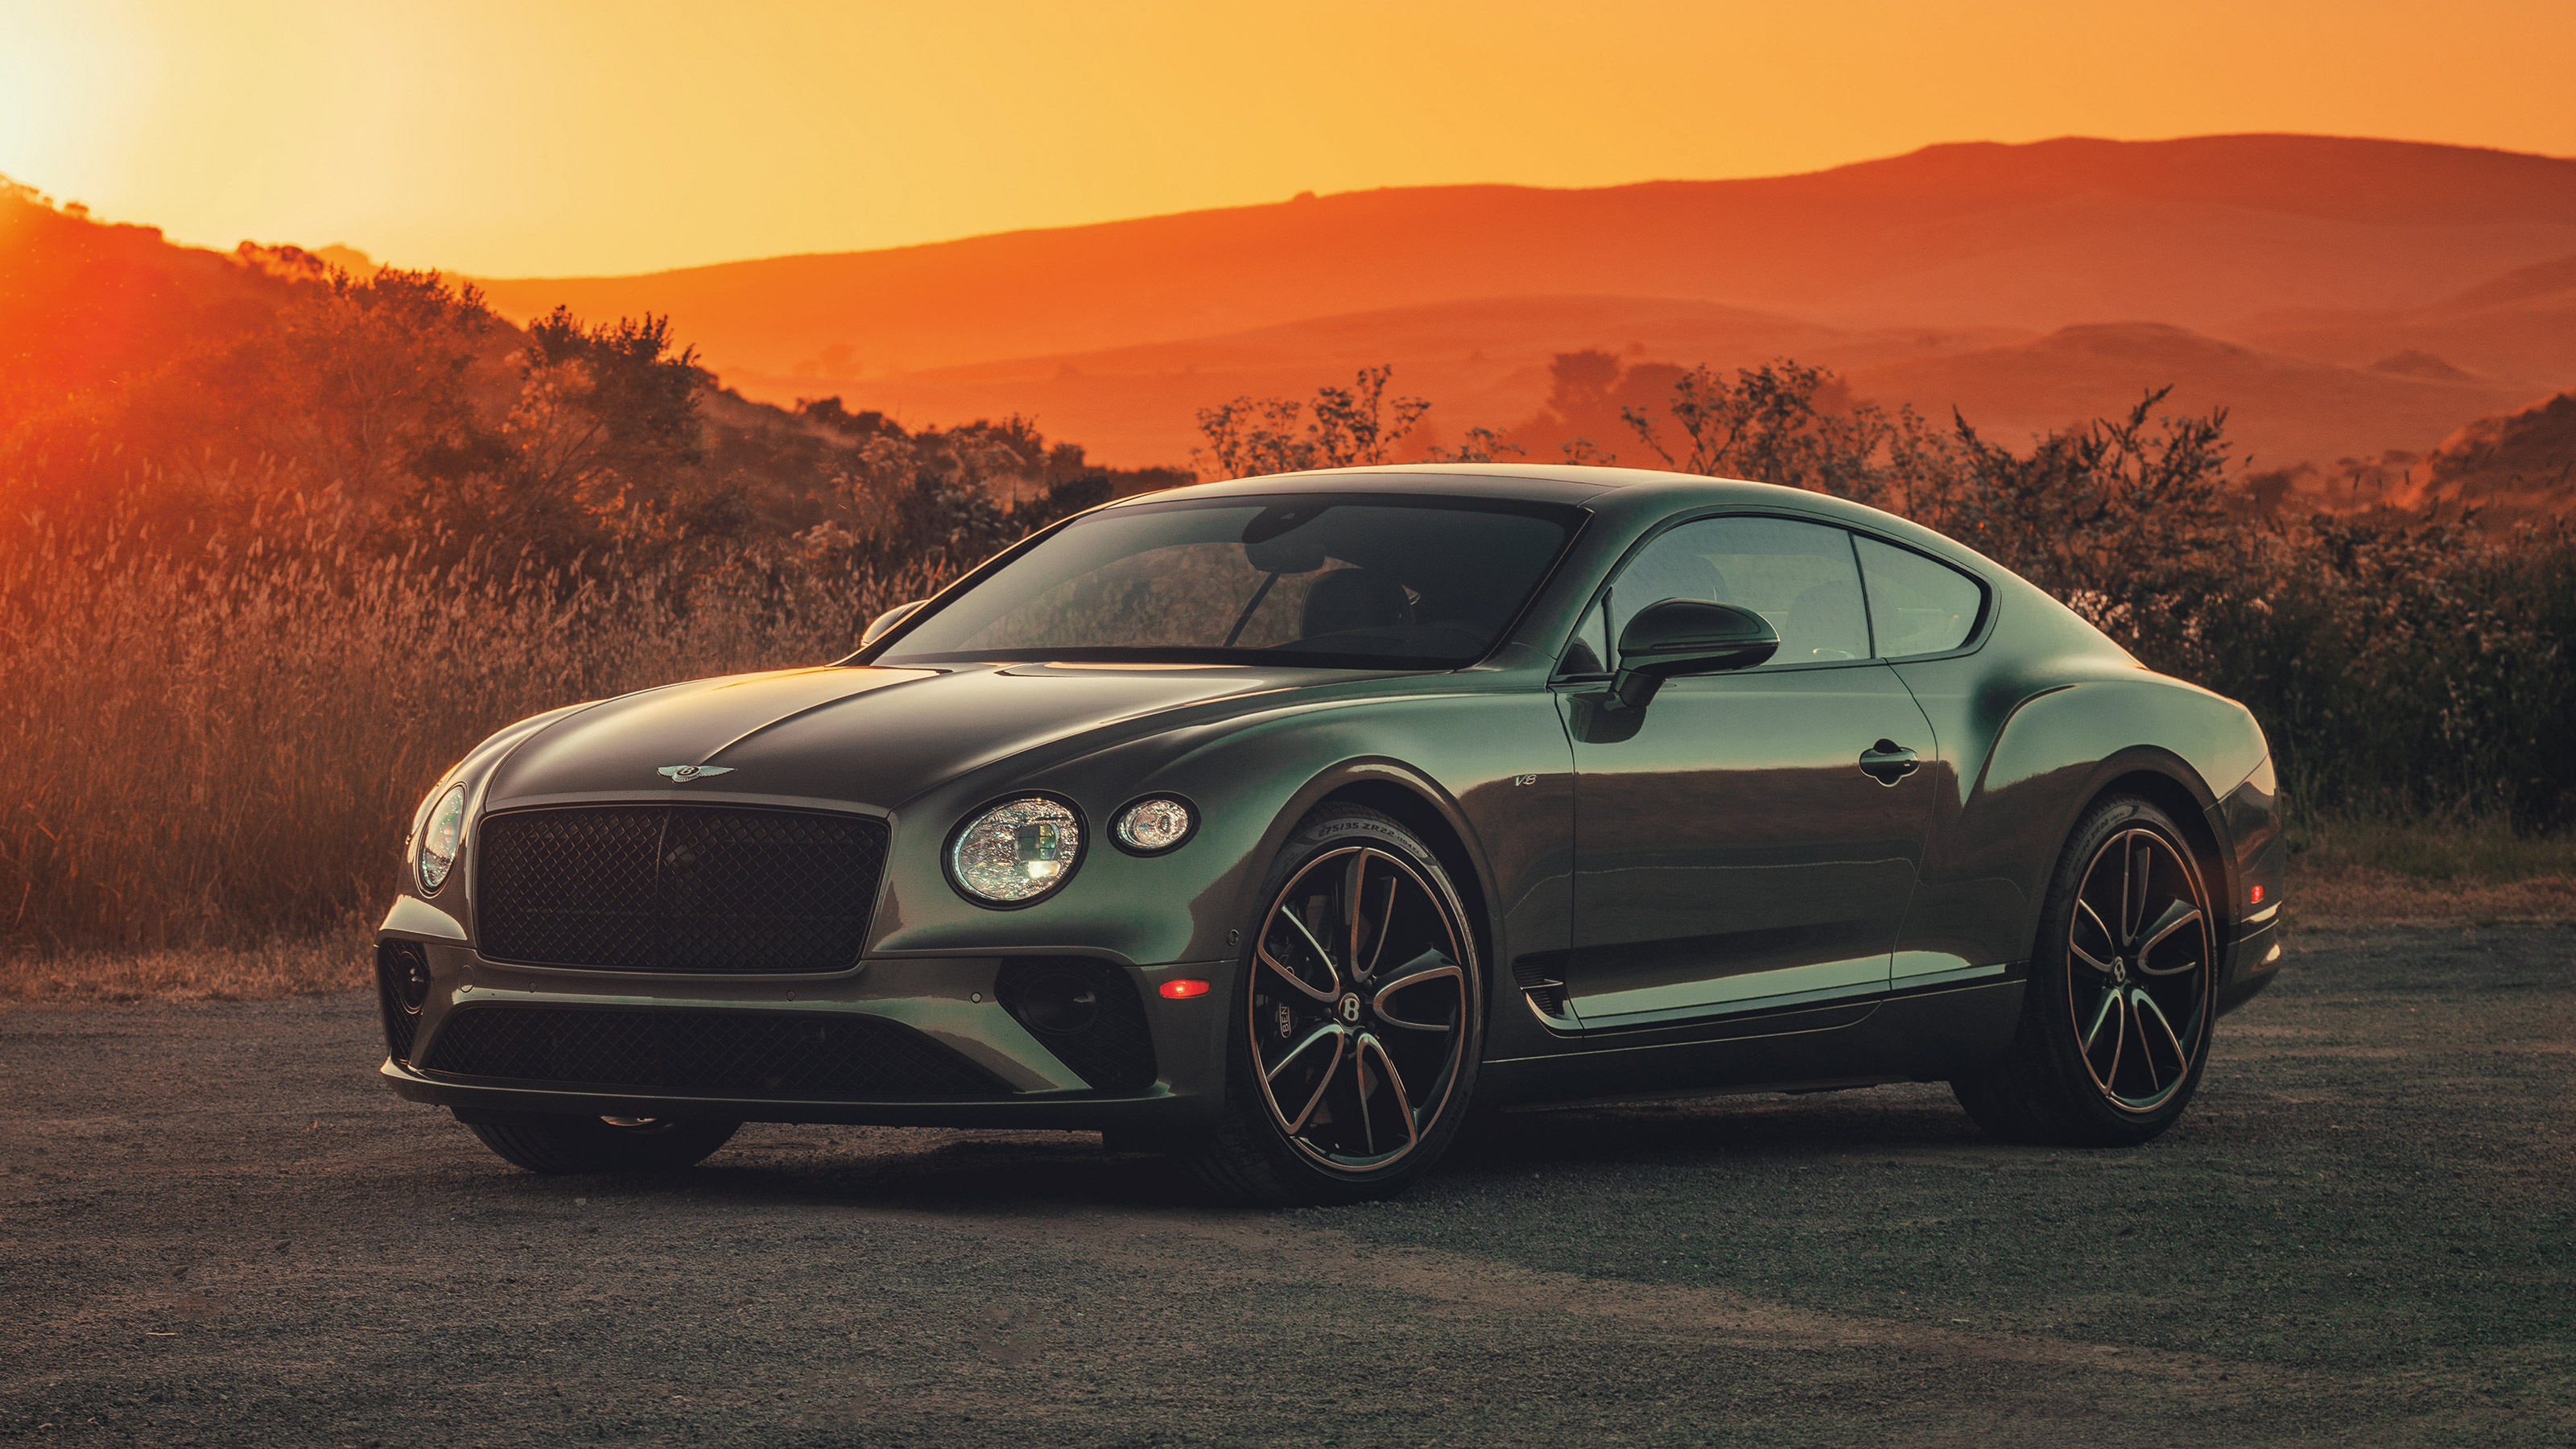 Best Gt Cars 2021 The Top 10 Elegant Grand Tourers You Can Buy Now Evo